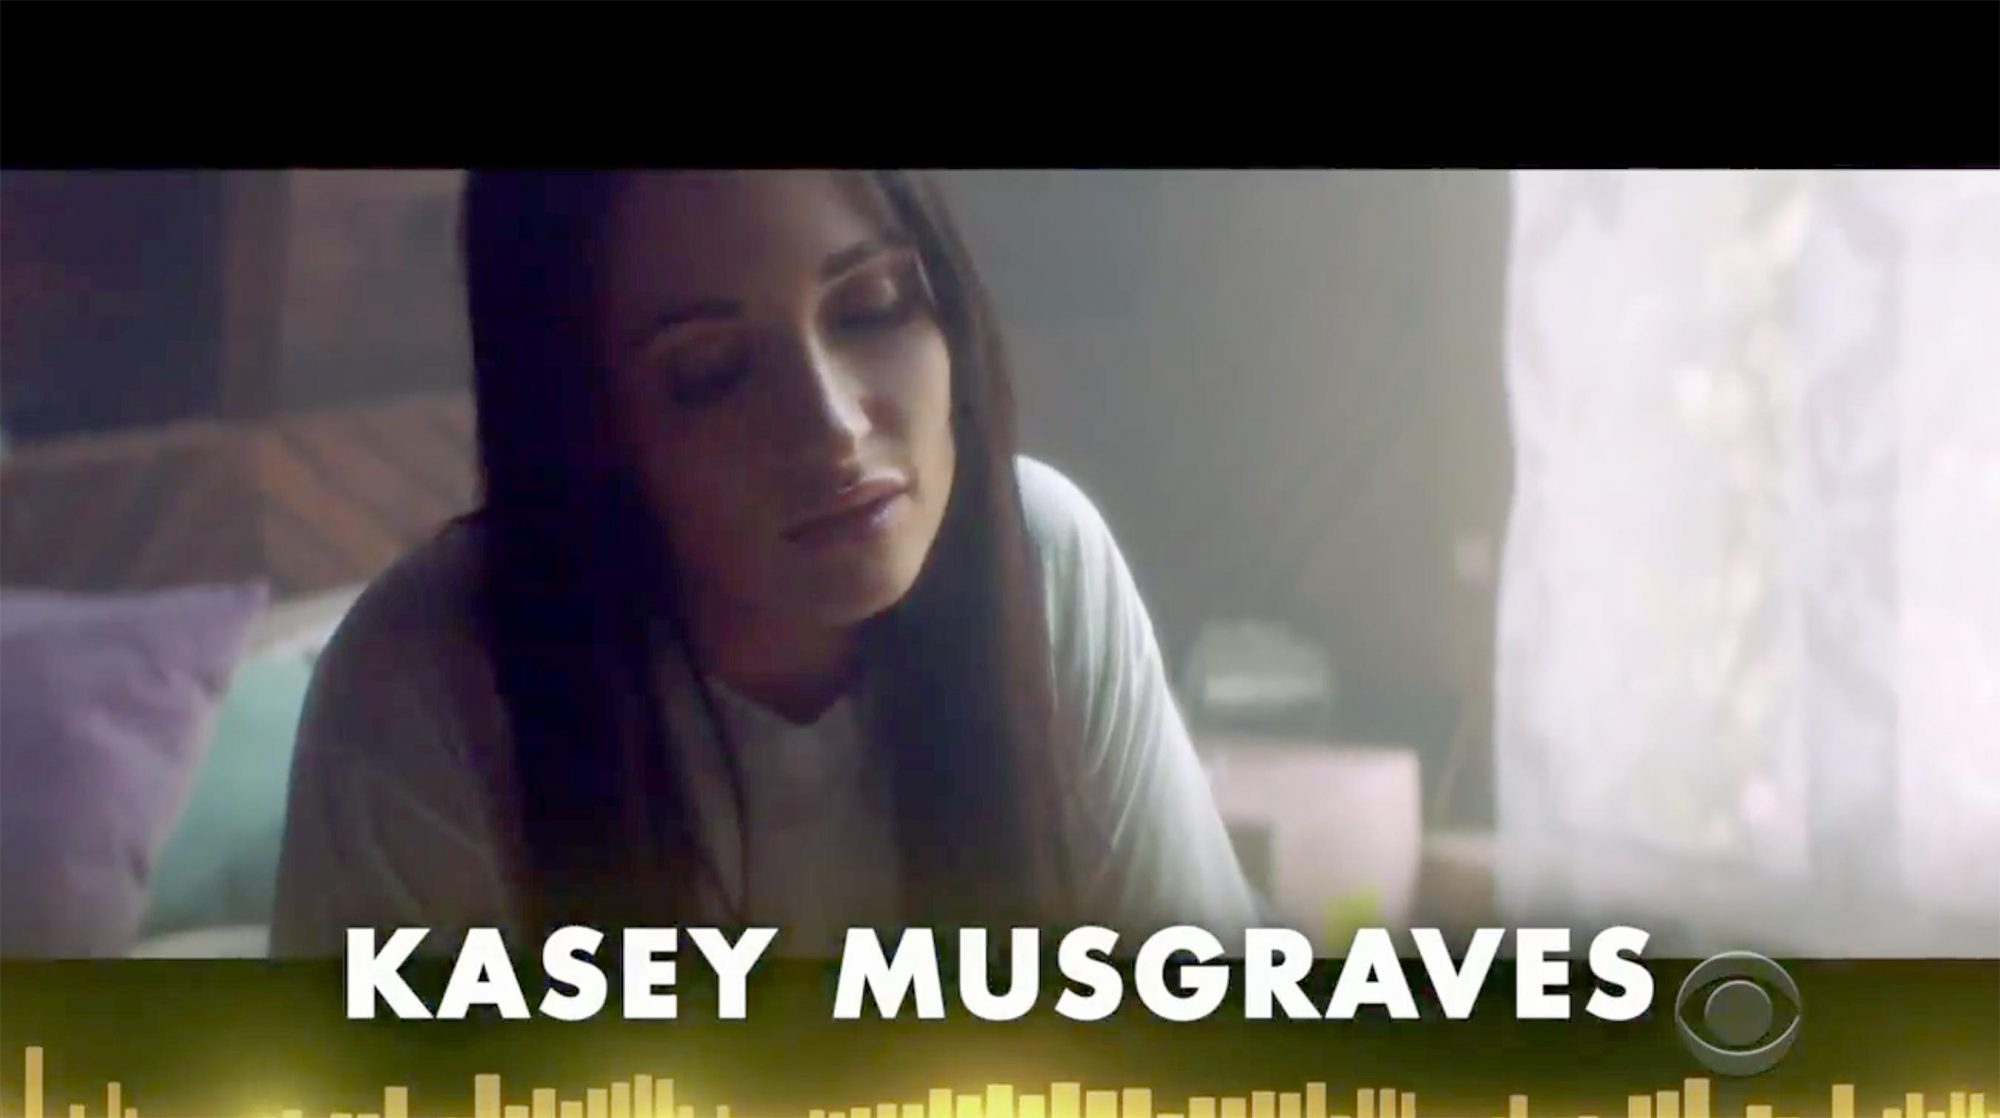 kacey-musgraves-name-misspelled